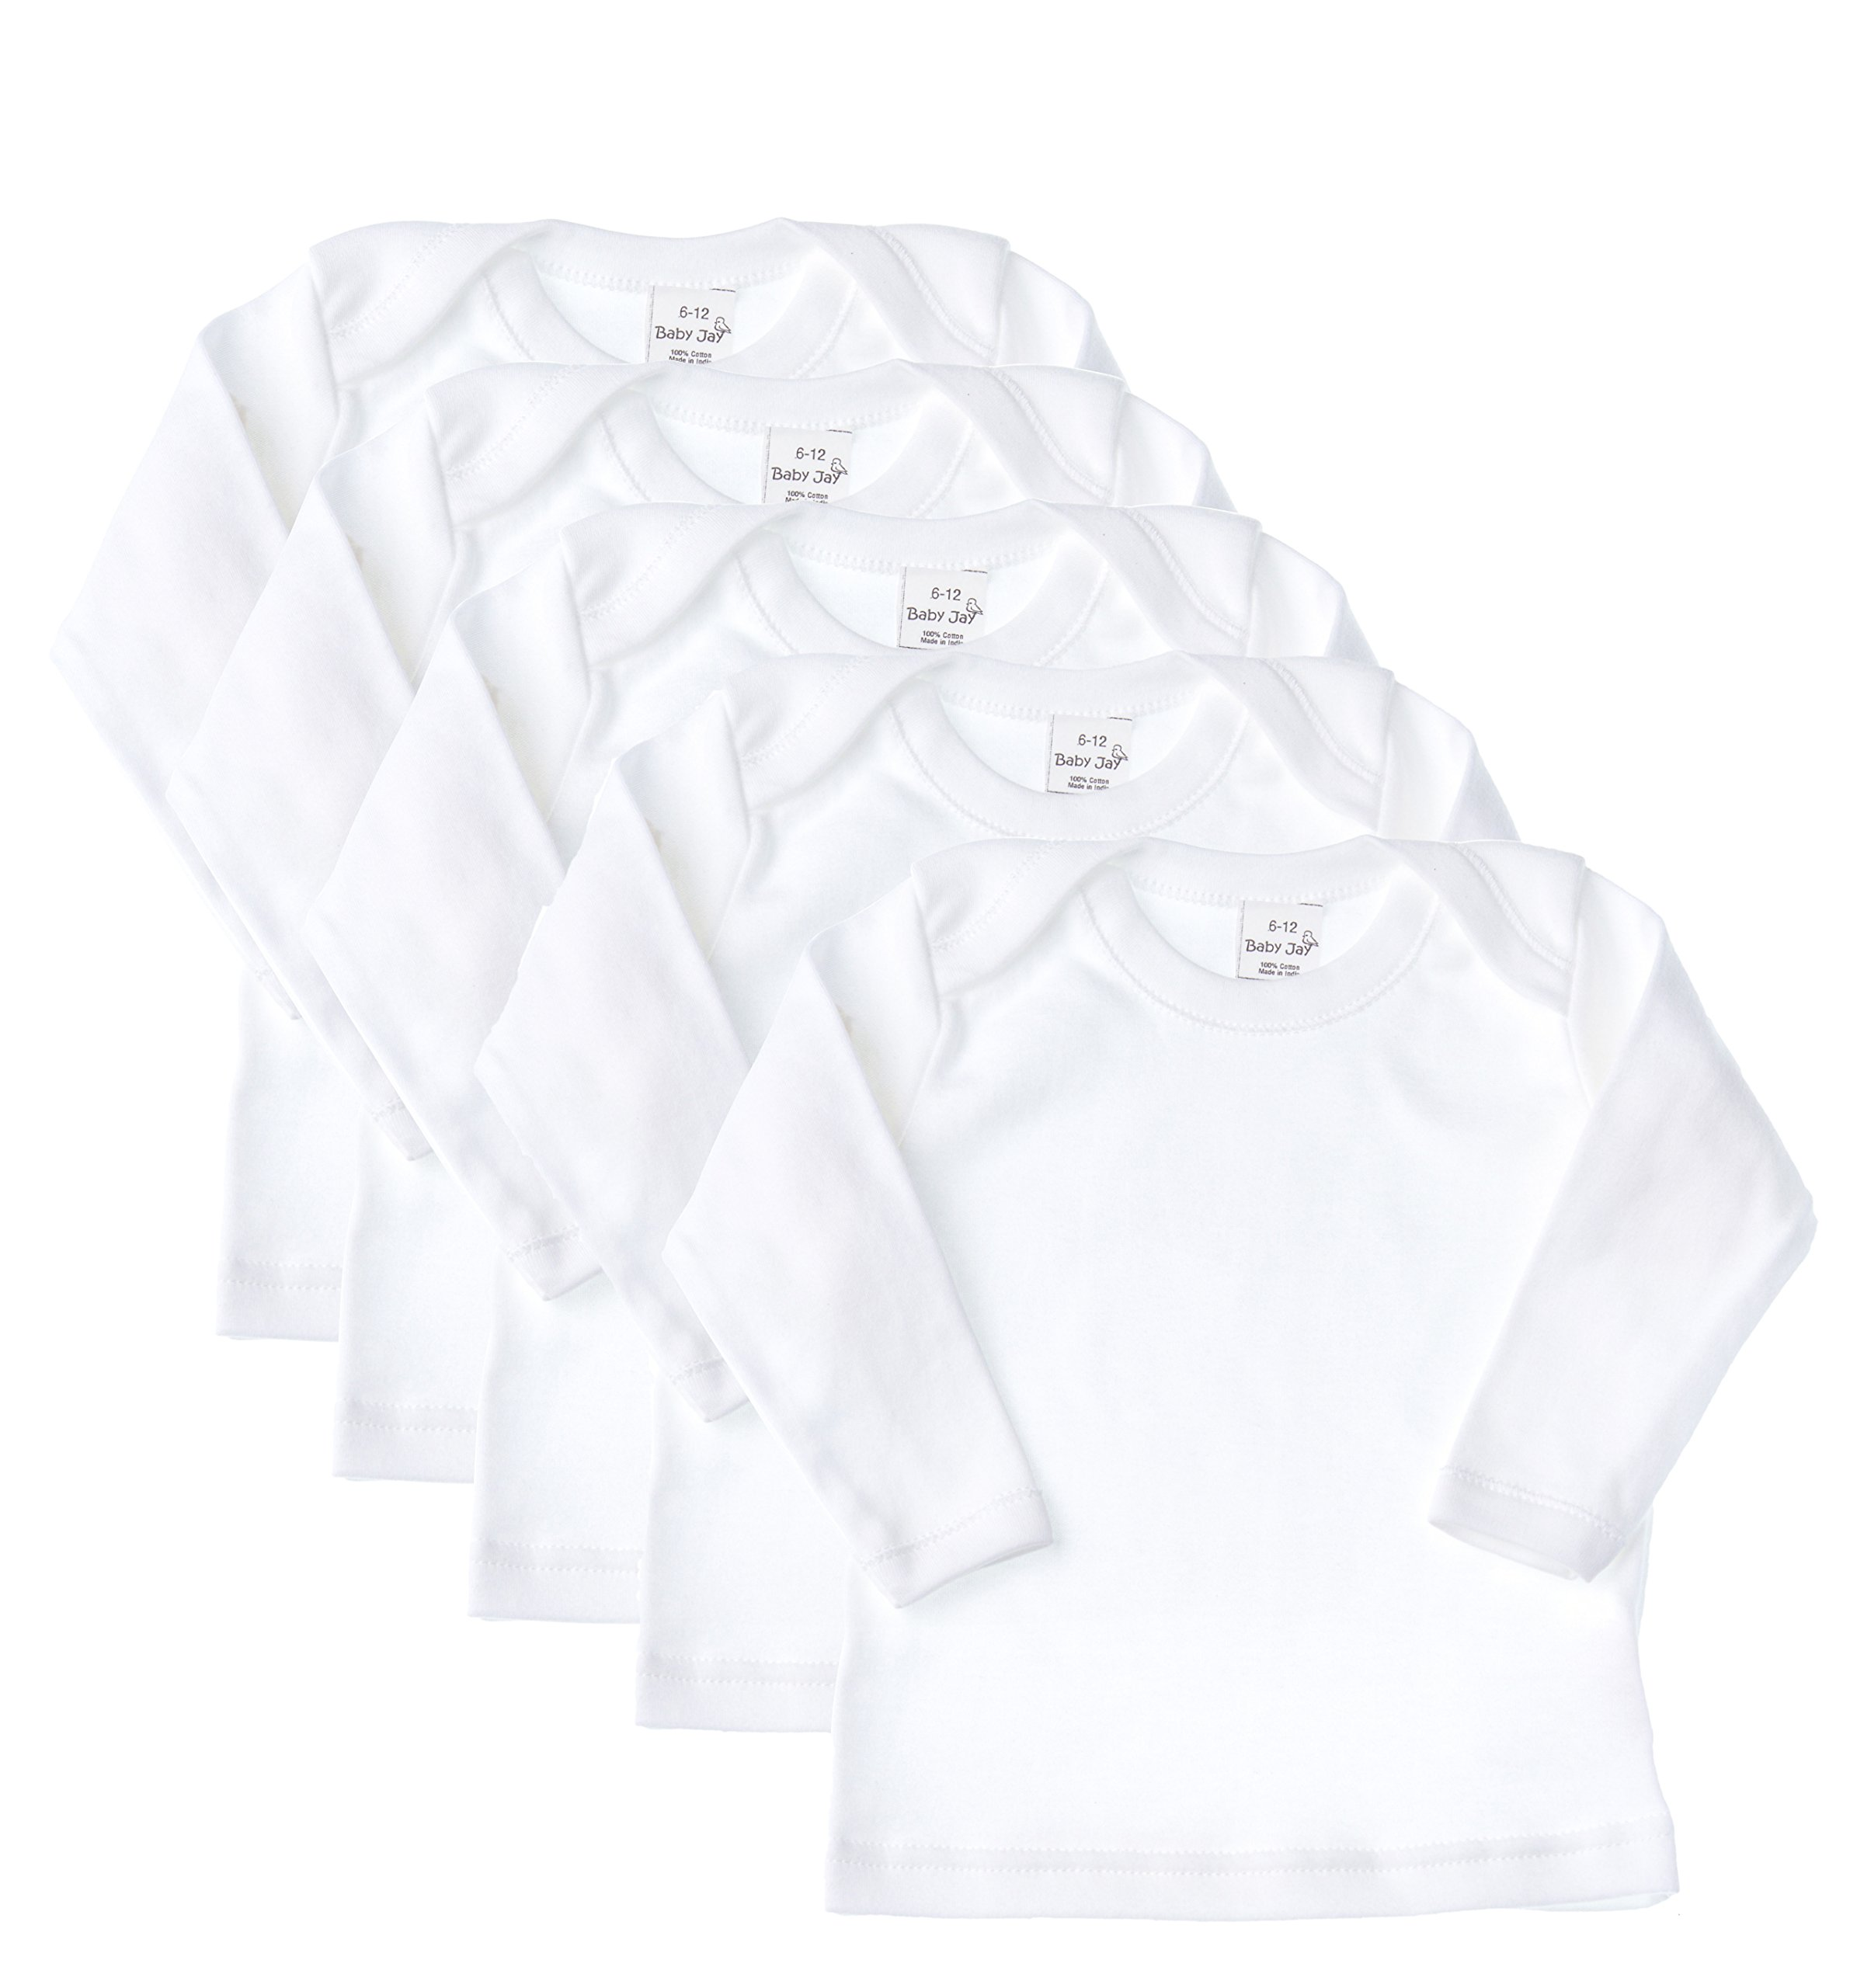 Baby Jay Cotton Undershirt T-Shirt, Long Sleeve Lap Shoulder - WTLE 18-24 5-Pack by Baby Jay (Image #1)